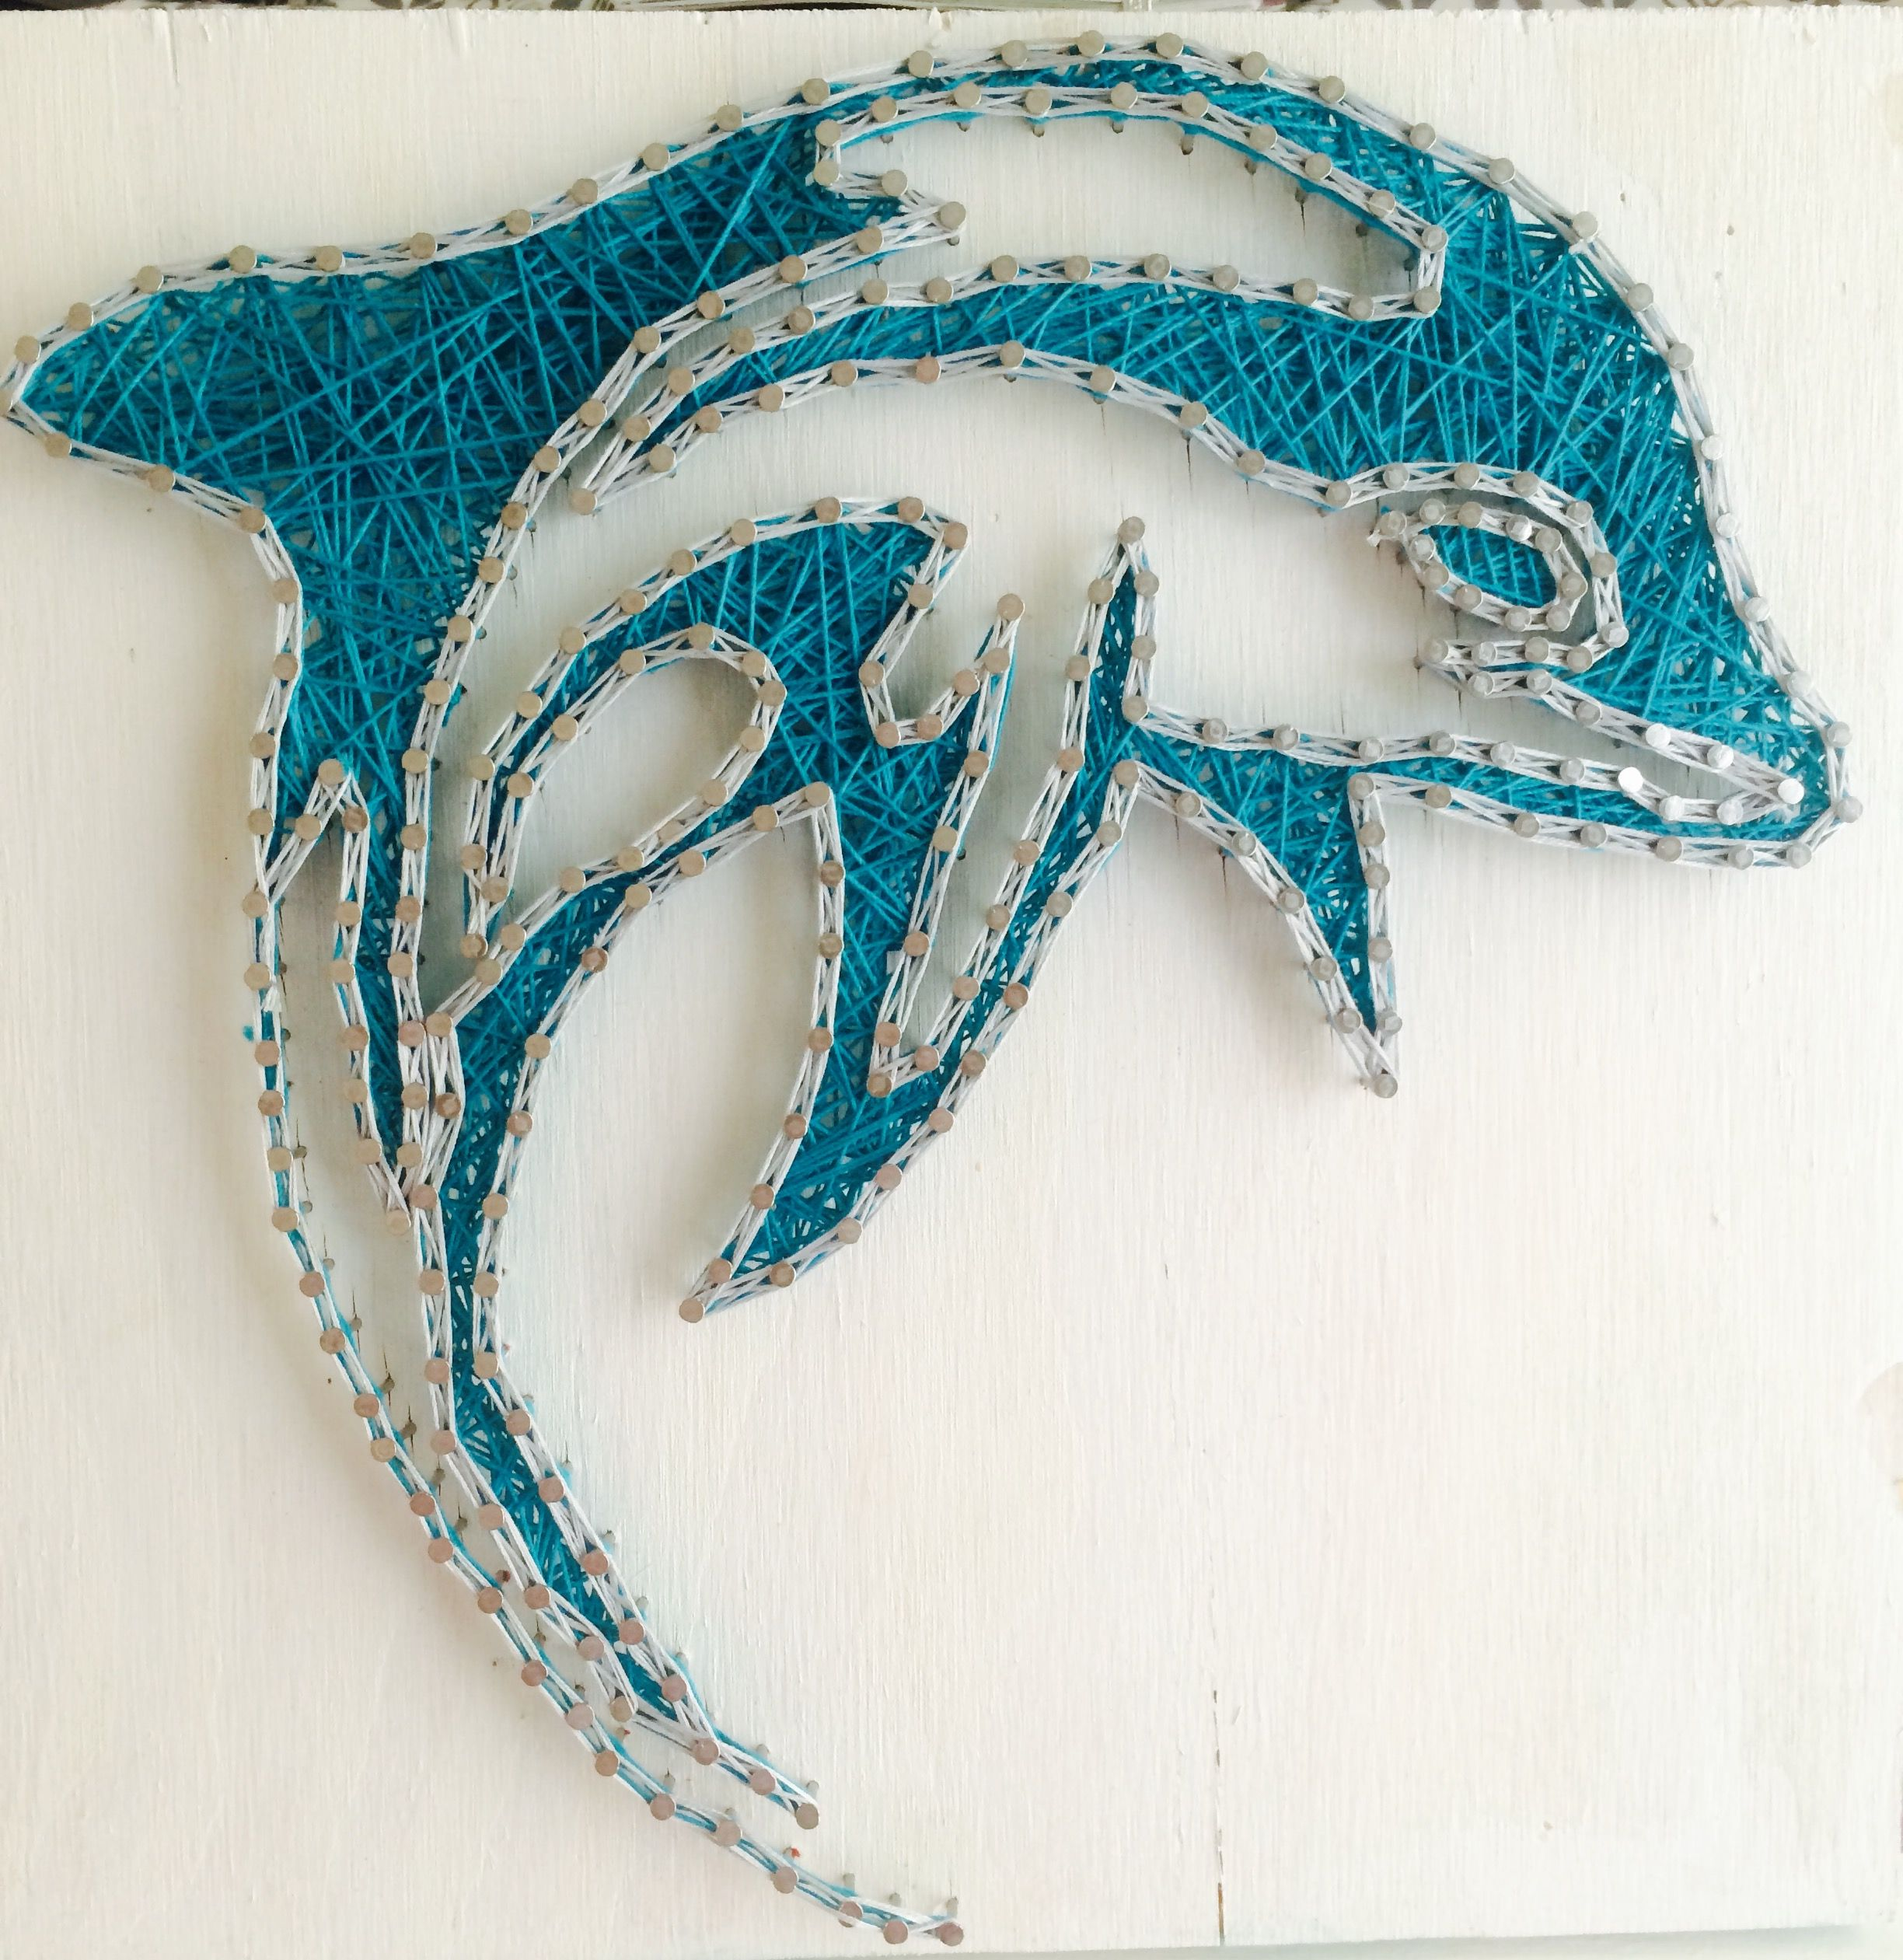 12x12 Dolphin String Art | String Art | Pinterest | String art ...